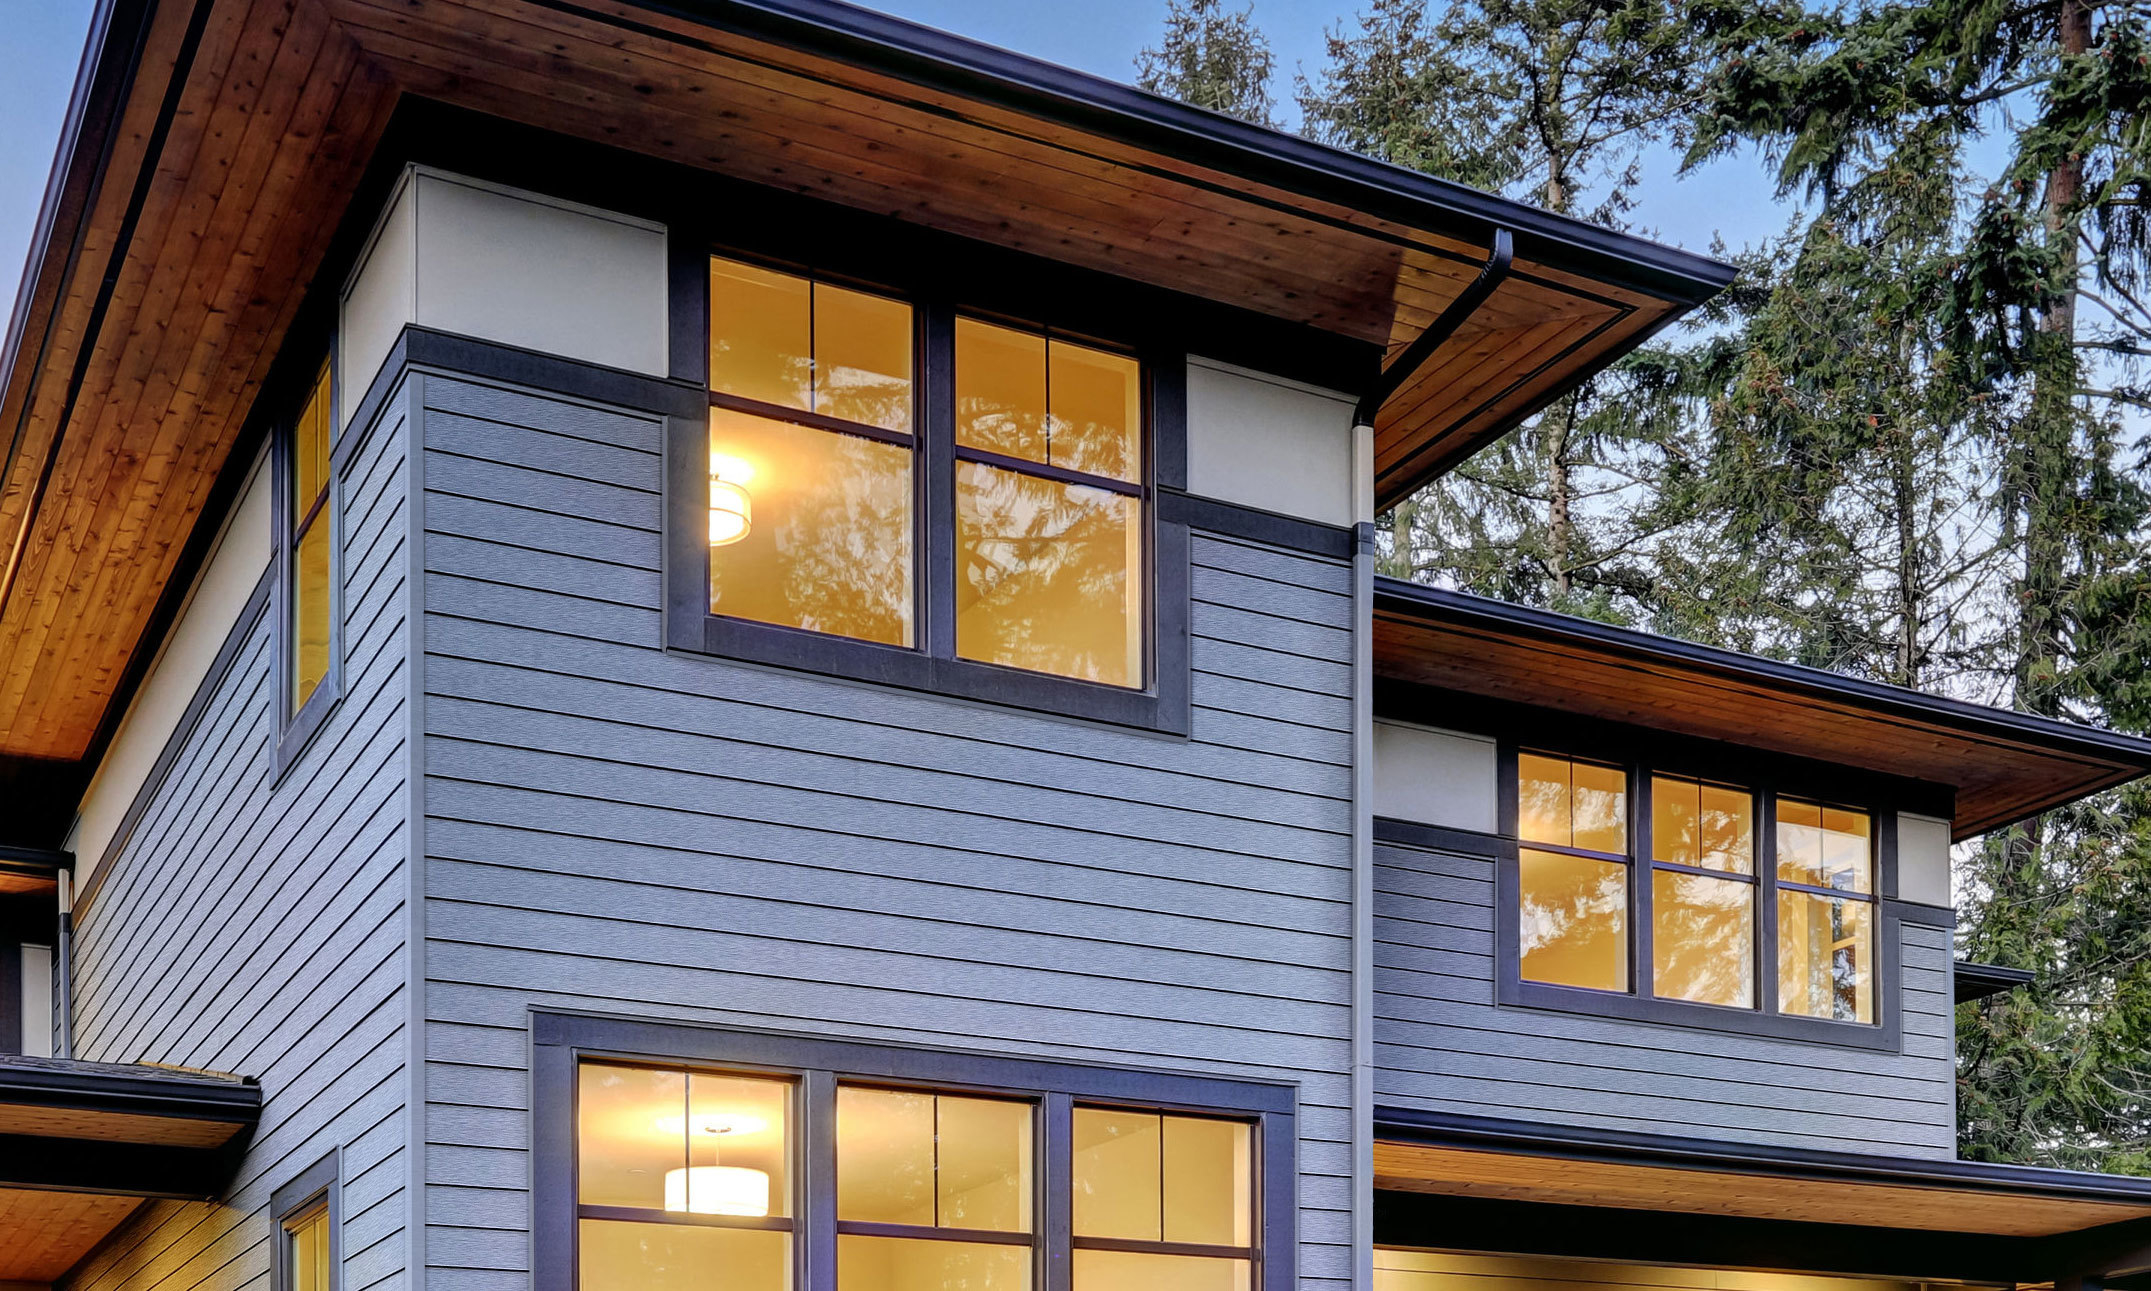 Steel Siding vs. Vinyl Siding: Pros and Cons of Each Material